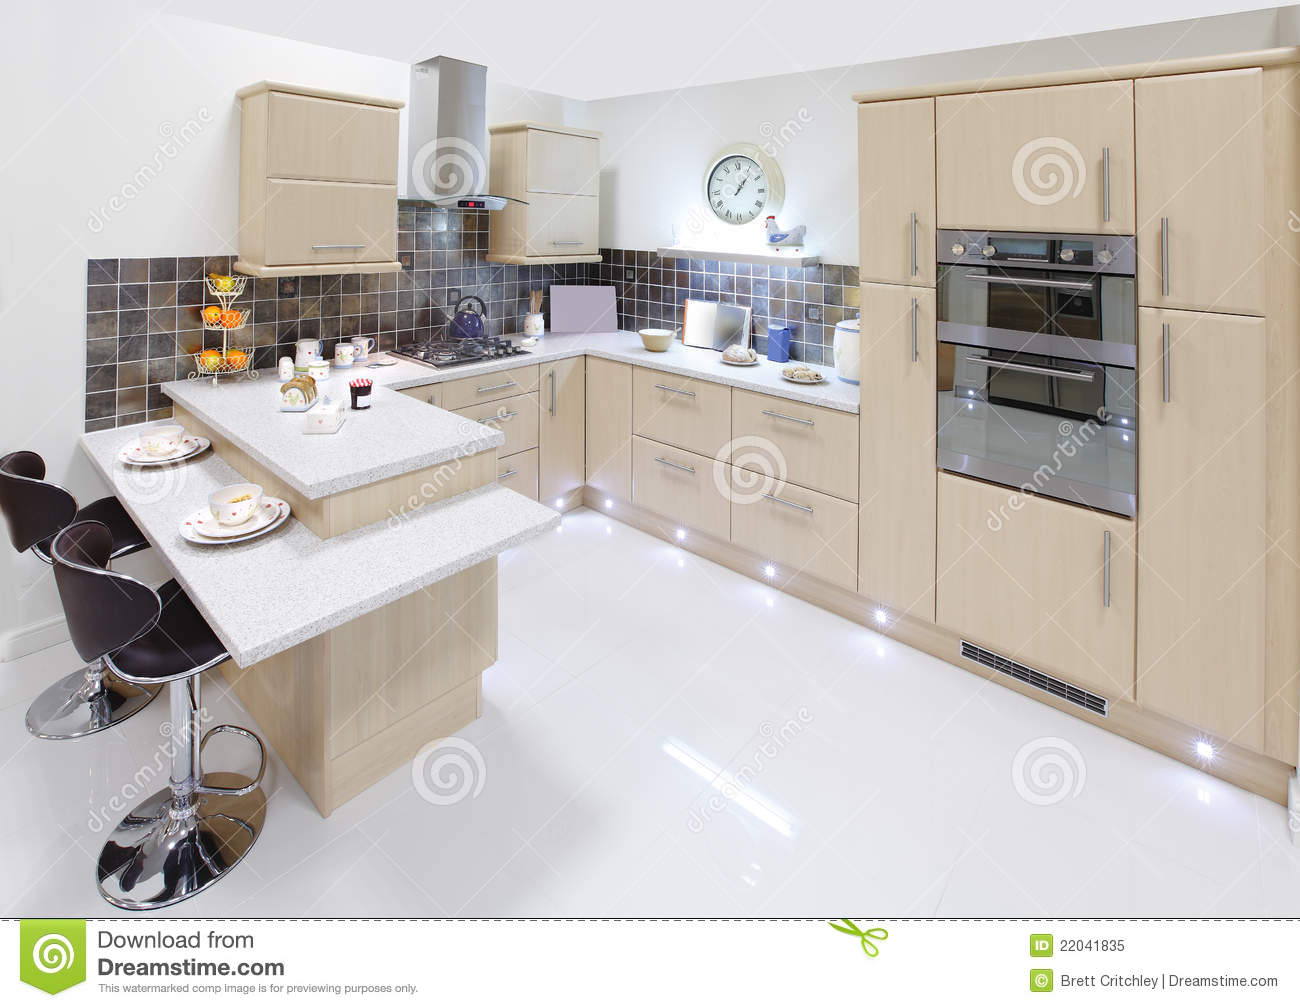 Modern home interior kitchen royalty free stock photo for Modern kitchen interior